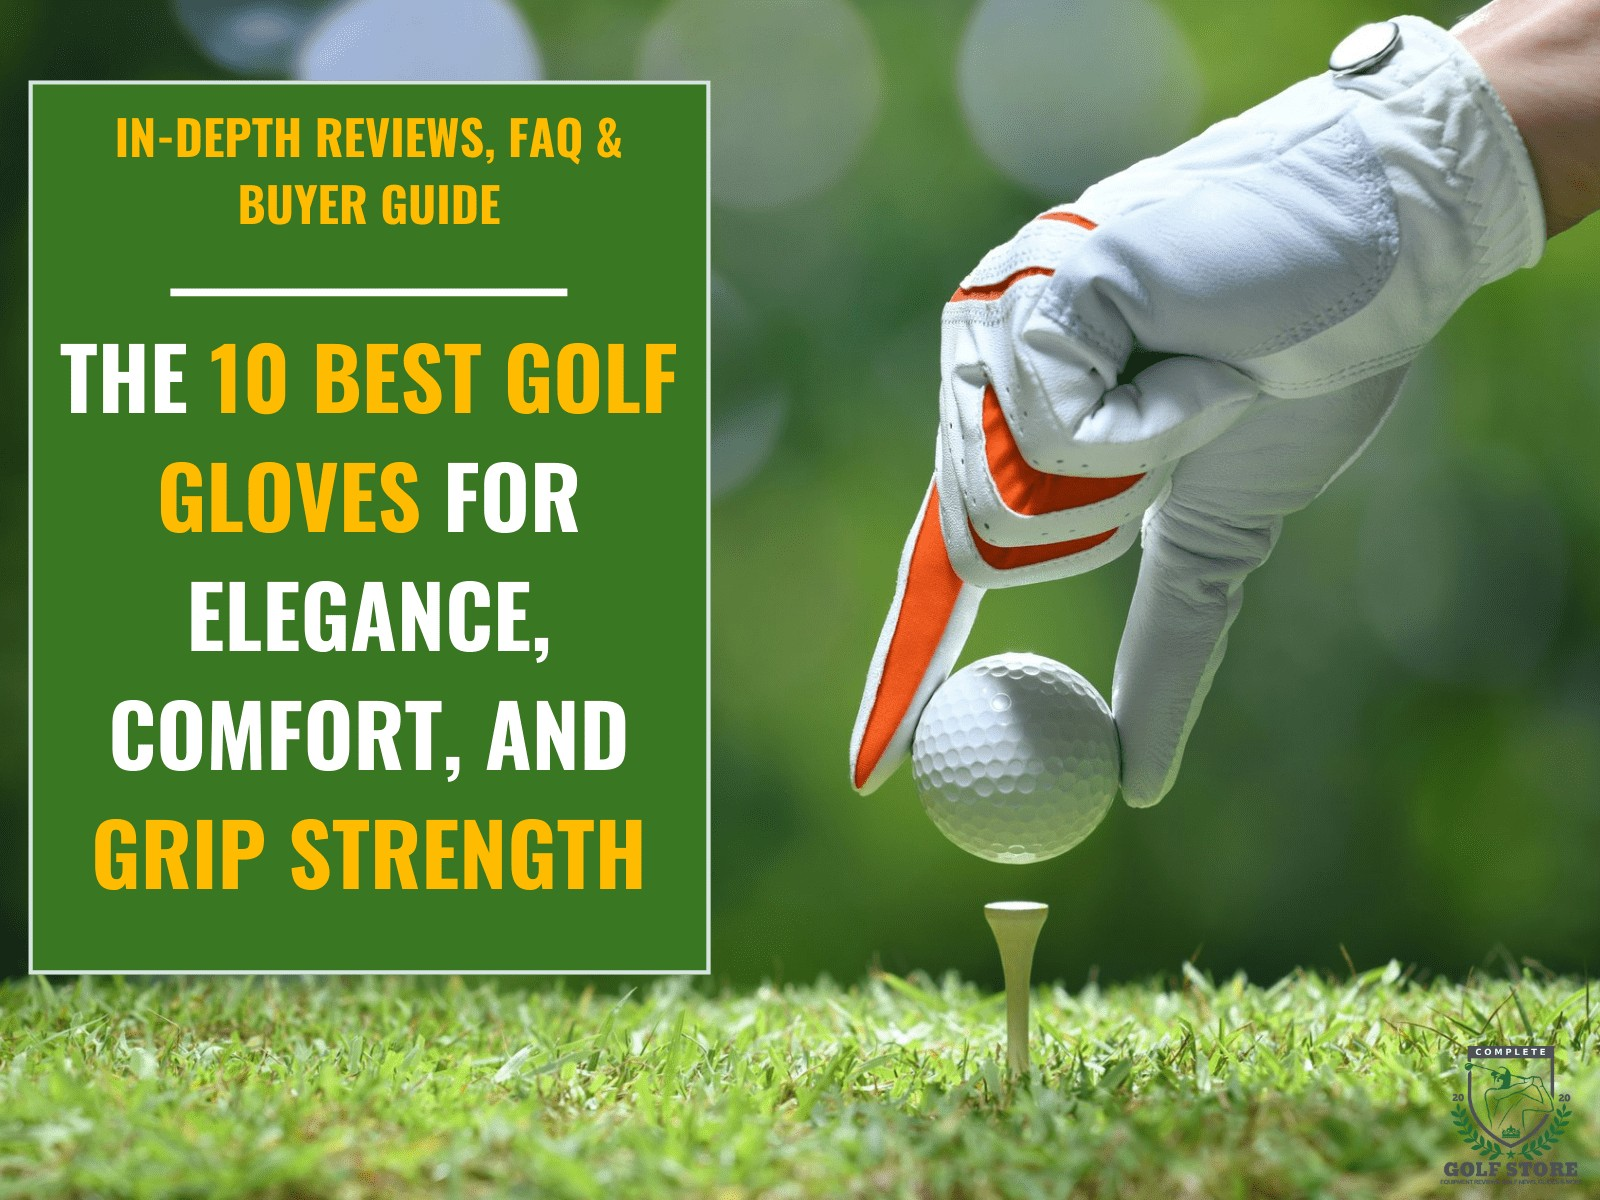 Hand with golf glove holding golf ball with tee on golf course with the text: 10 Best Golf Gloves For Elegance, Comfort, And Grip Strength